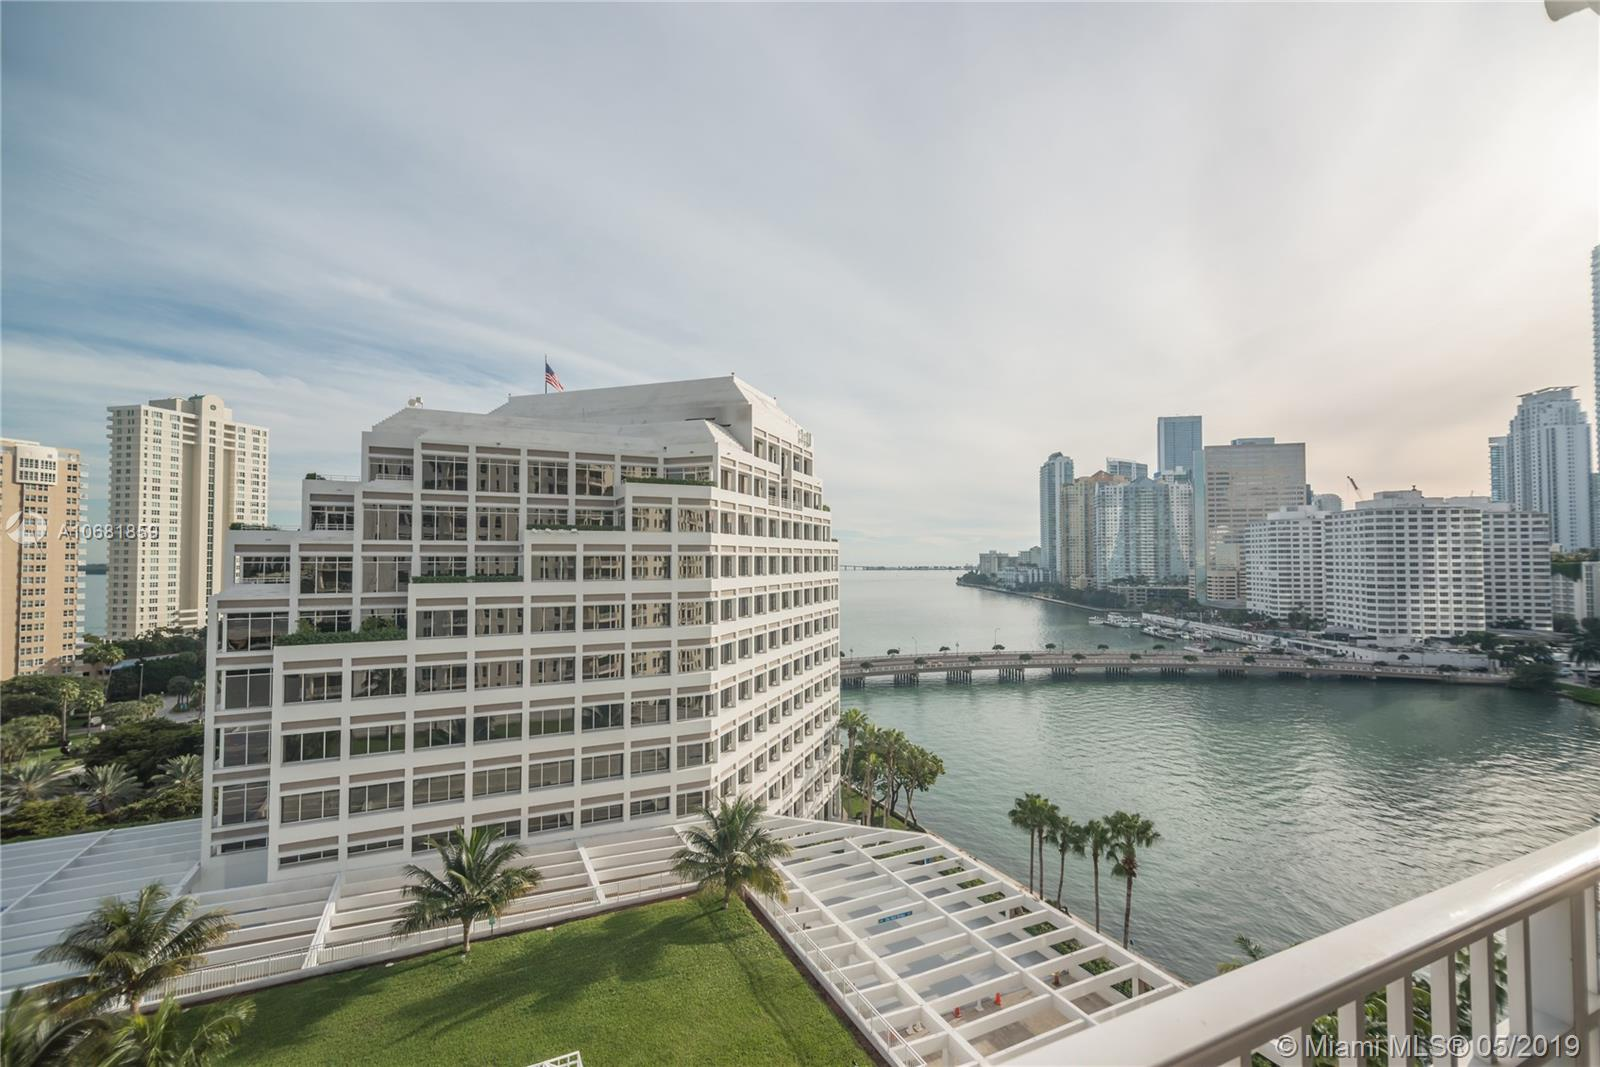 Courvoisier Courts #1411 - 701 BRICKELL KEY BL #1411, Miami, FL 33131